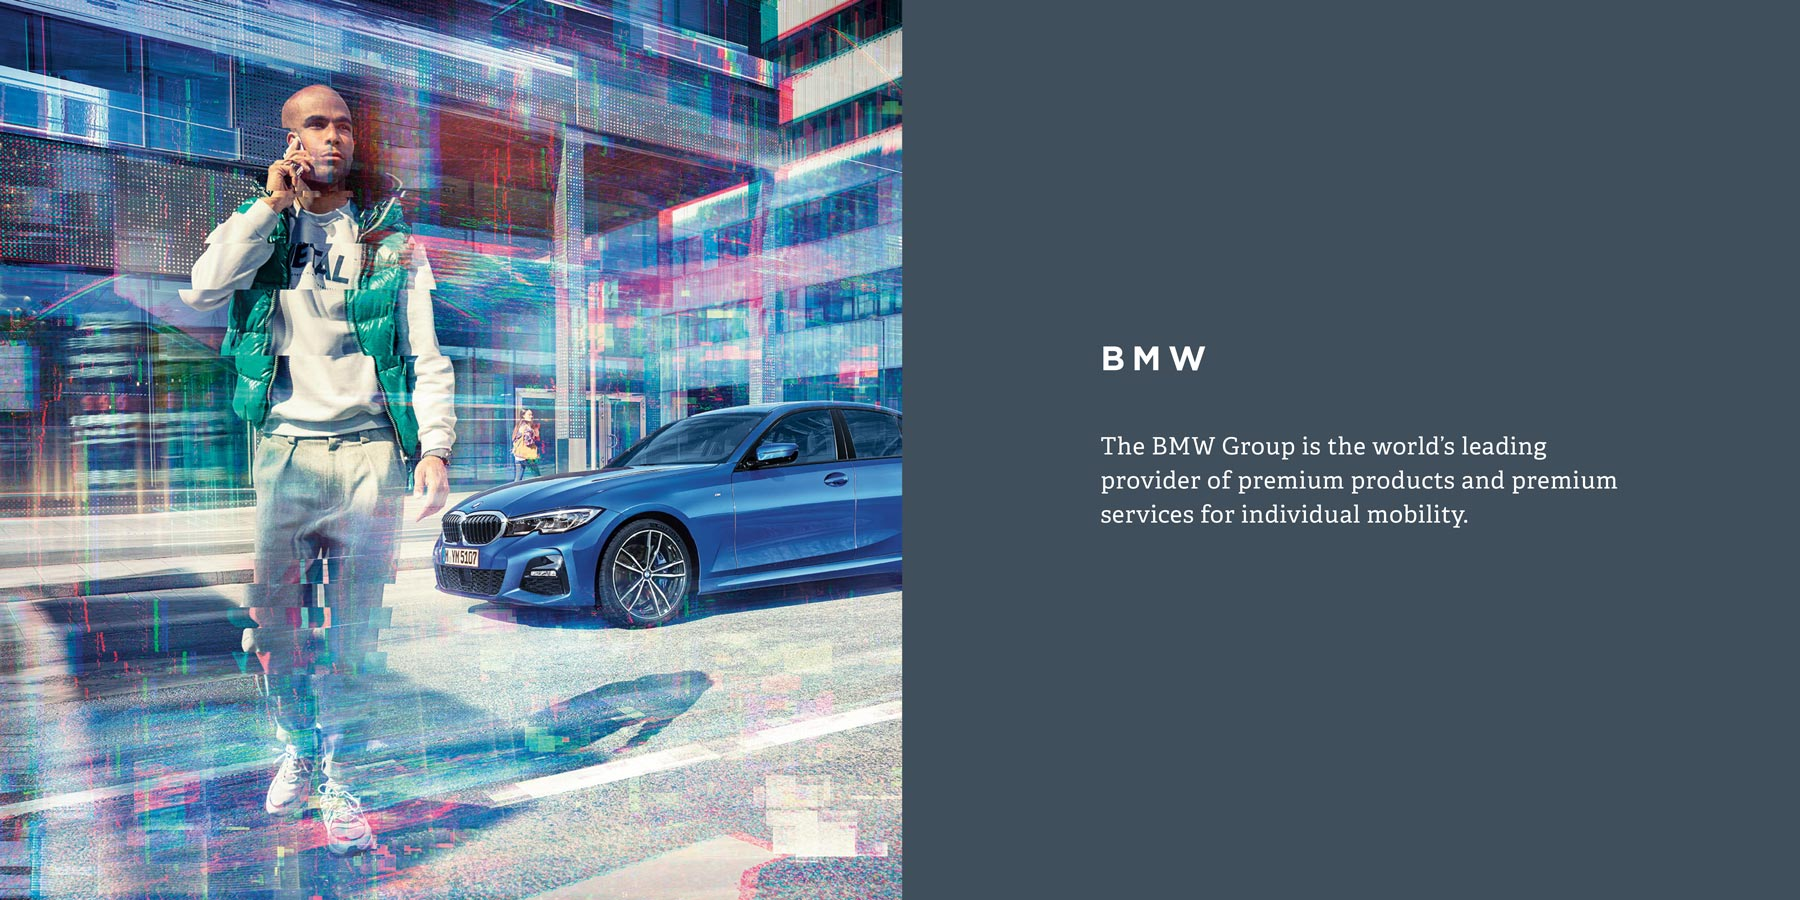 The BMW Group is the world's leading provider of premium products and premium services for individual mobility.